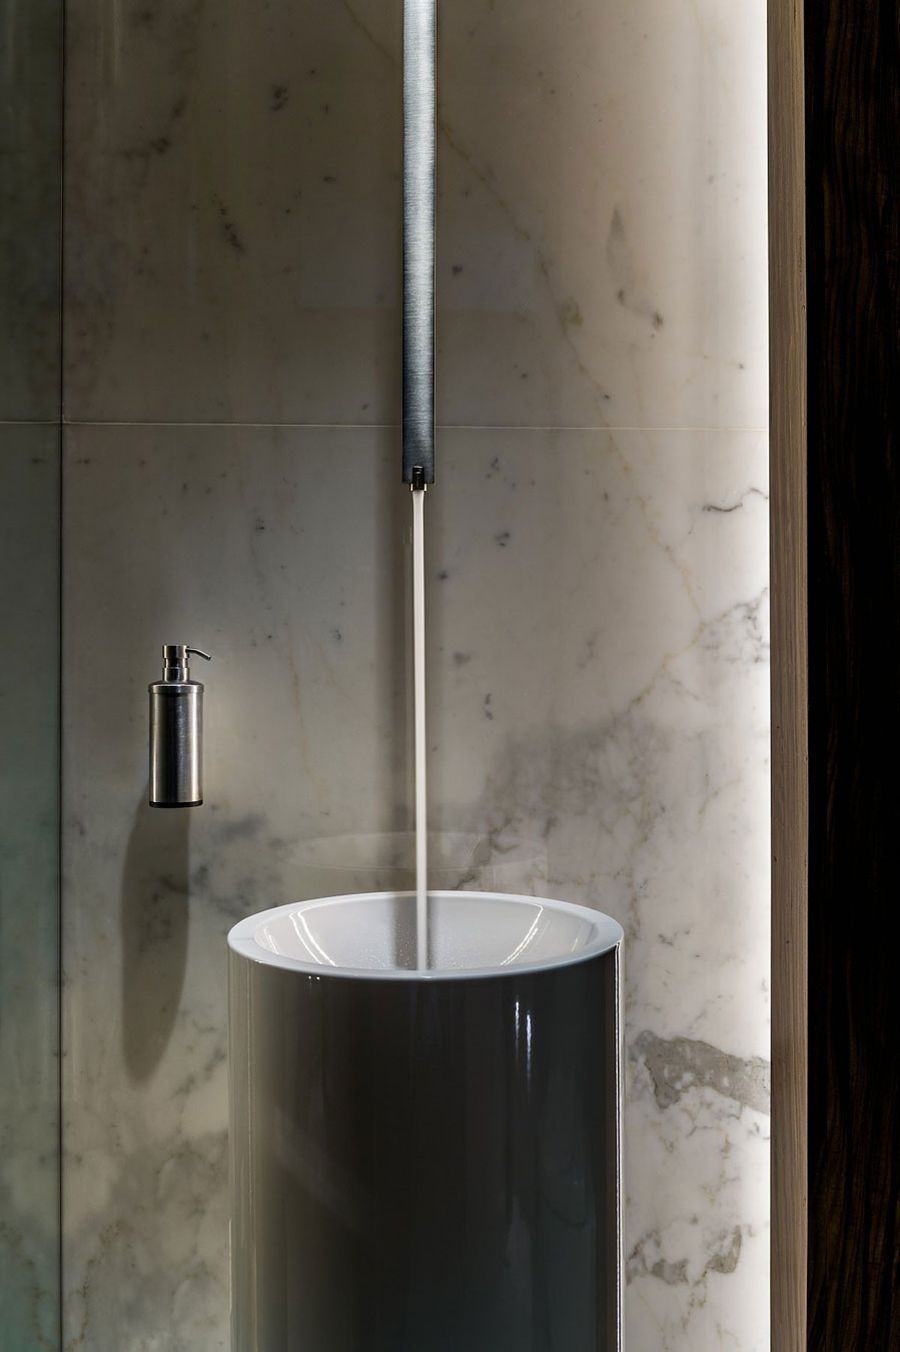 Contemporary bathroom accessories in black and gray